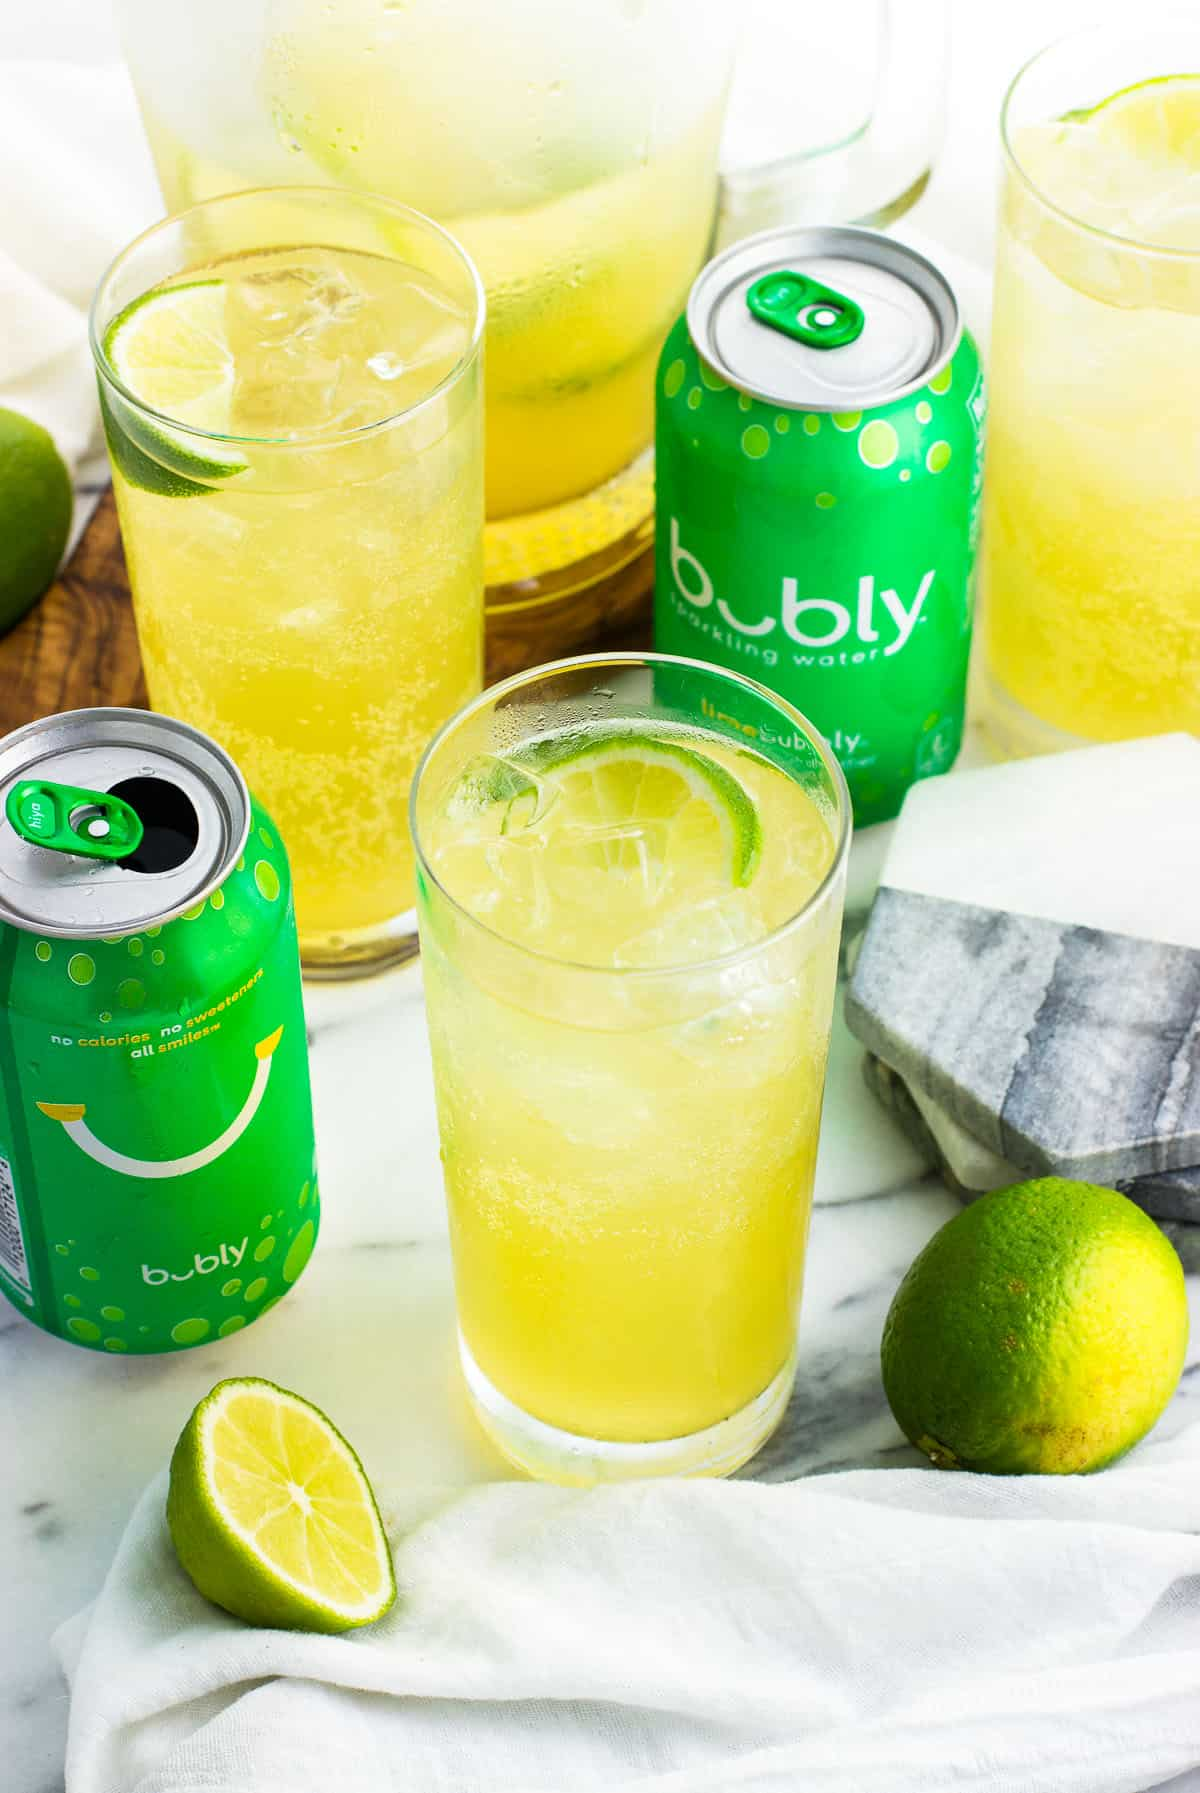 Glasses of mocktails and cans of lime bubly on a table with coasters and limes.